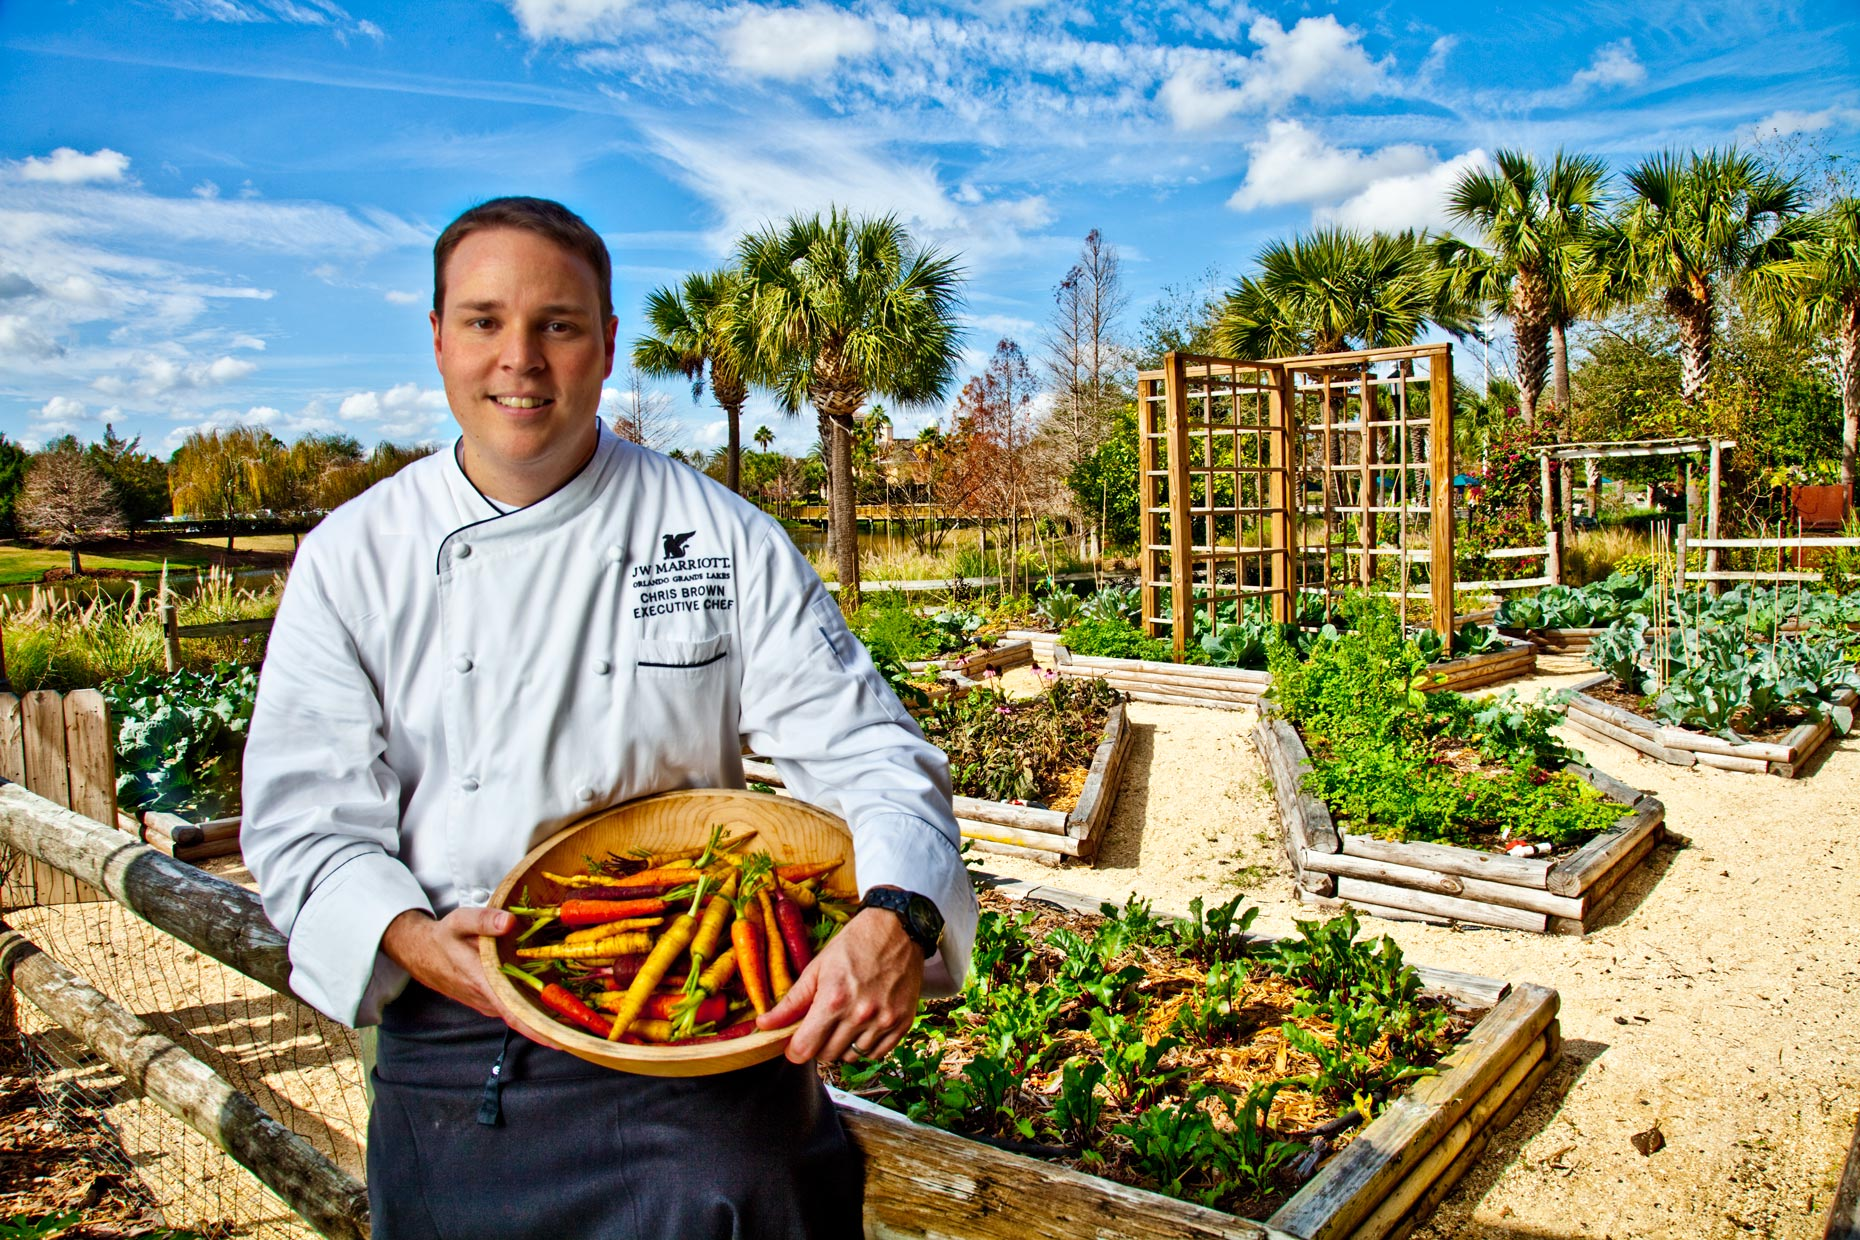 Hotel & Resorts Photogrpahy | Chef in Garden at J W Marriott Hotel Orlando